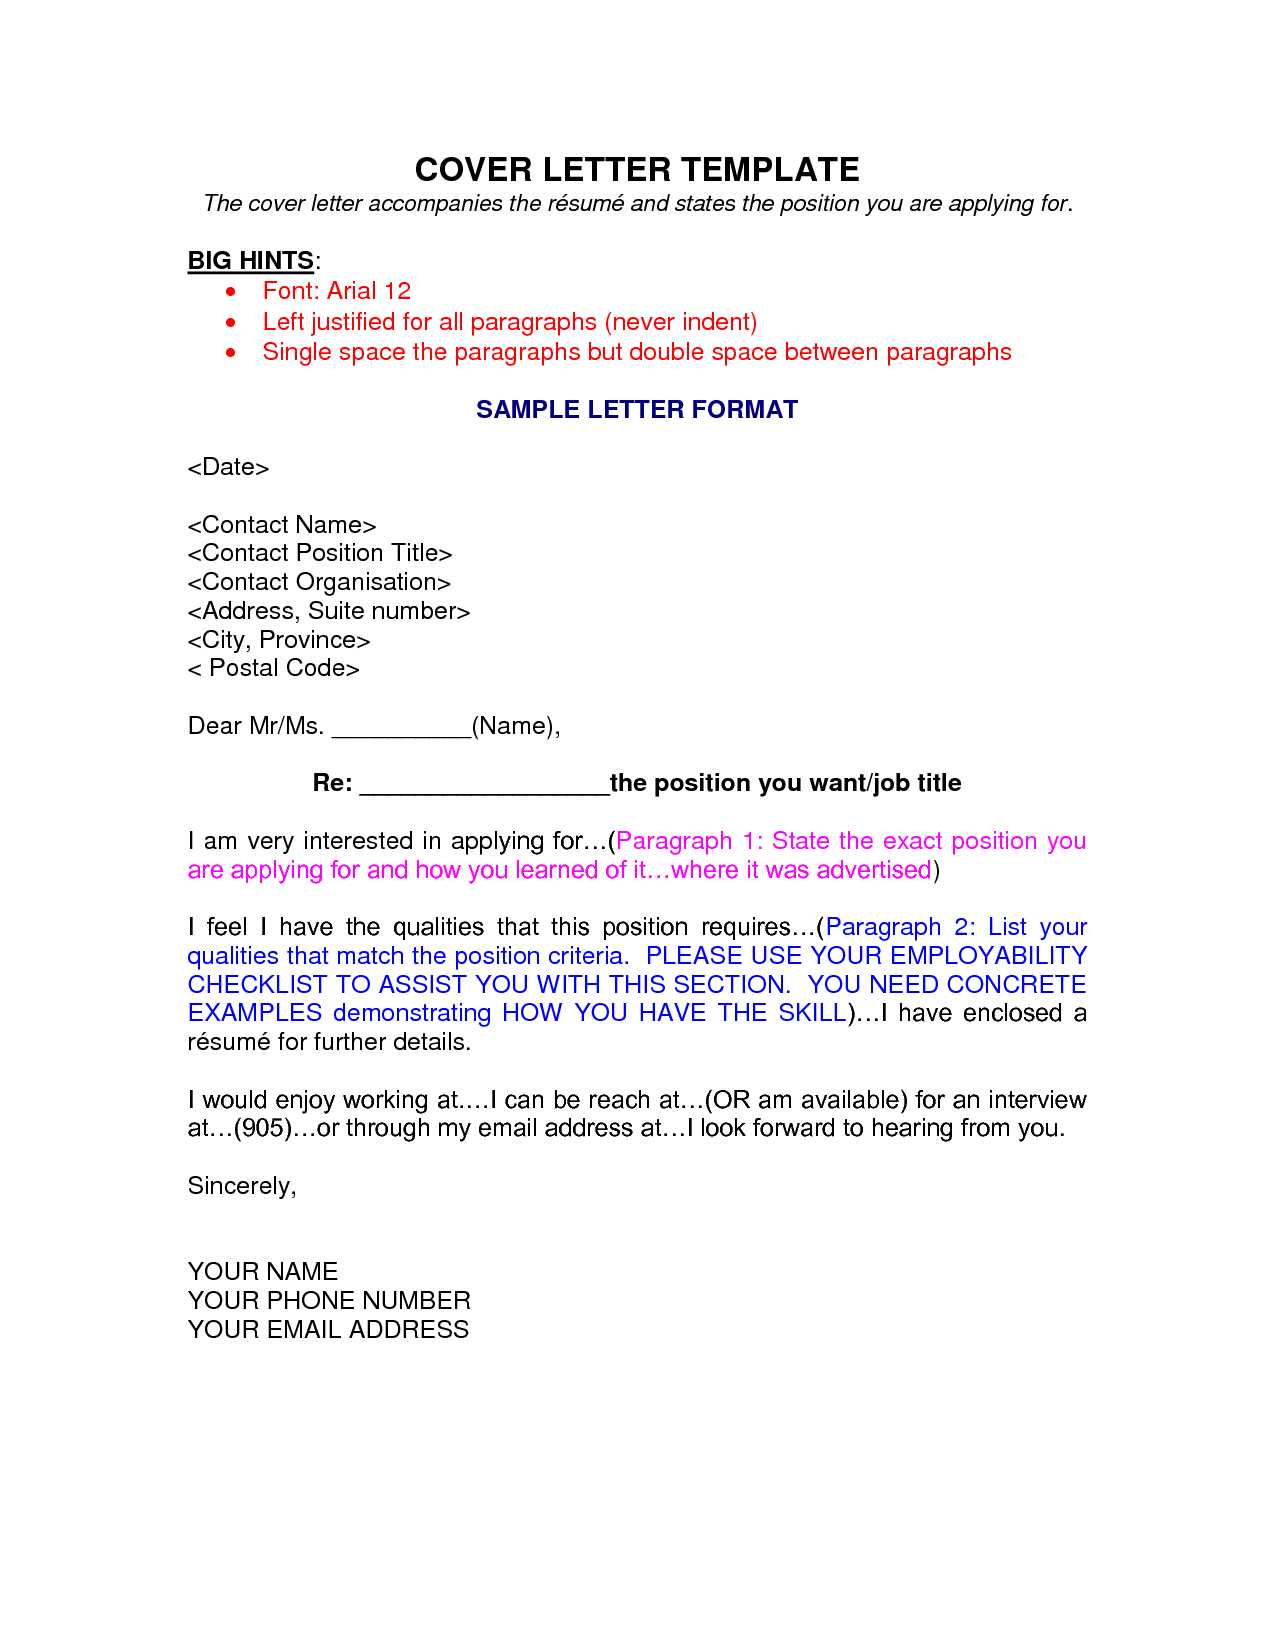 Ingenious Design Ideas Monster Cover Letter    Sample Winning Letters  More With